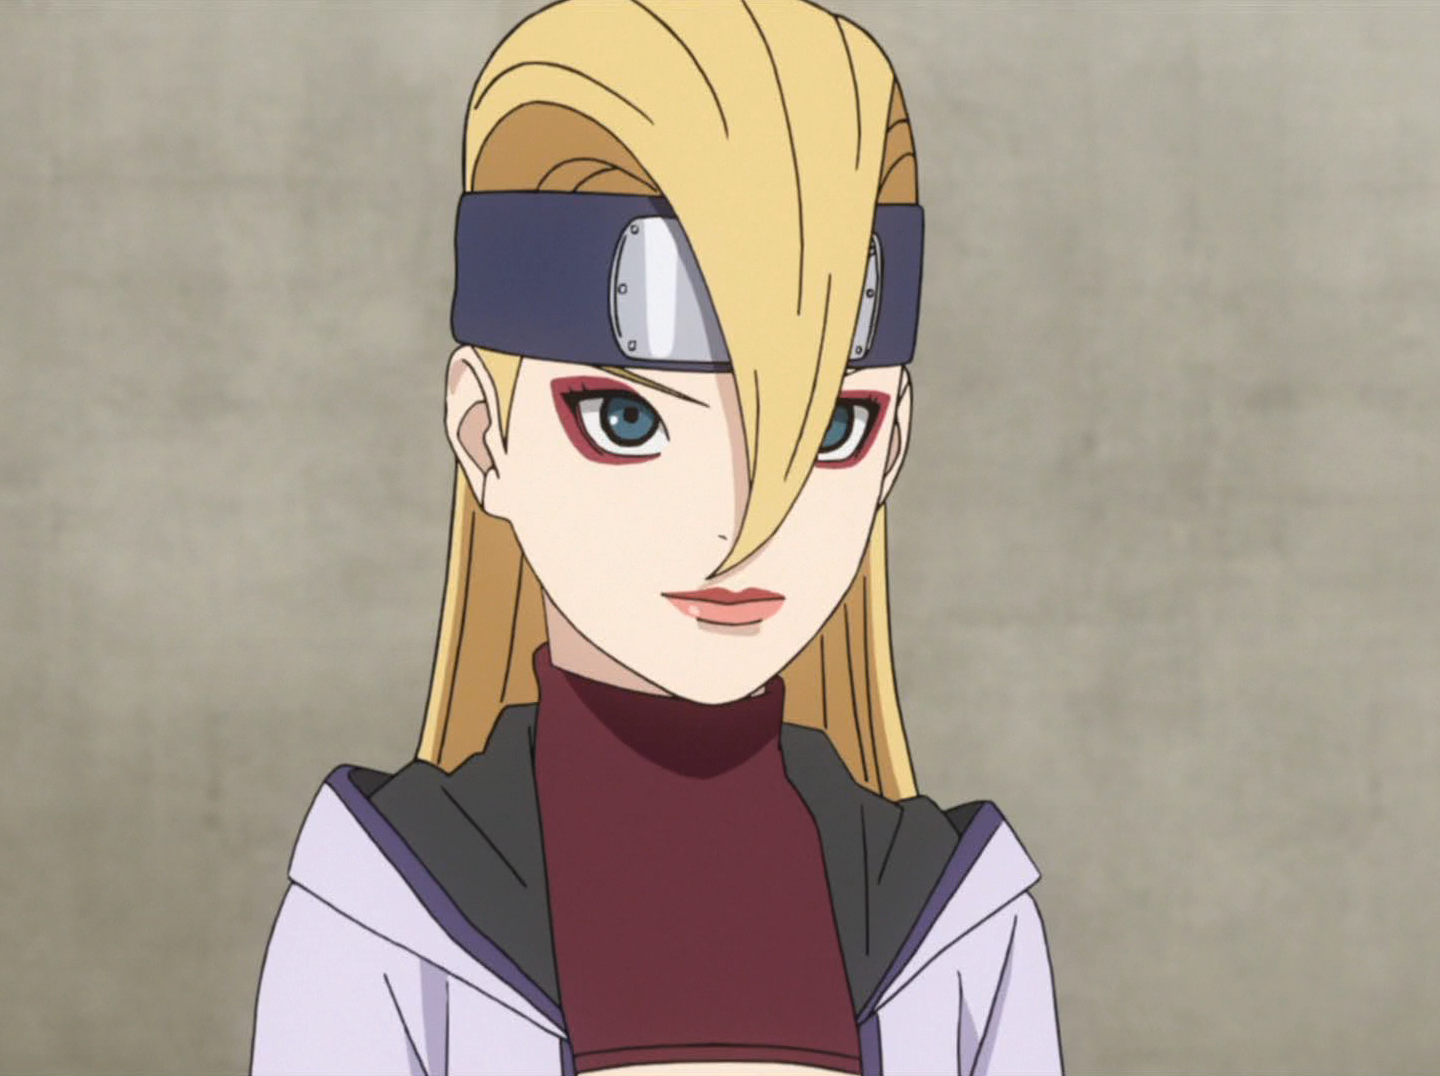 Yodo | Narutopedia | FANDOM powered by Wikia